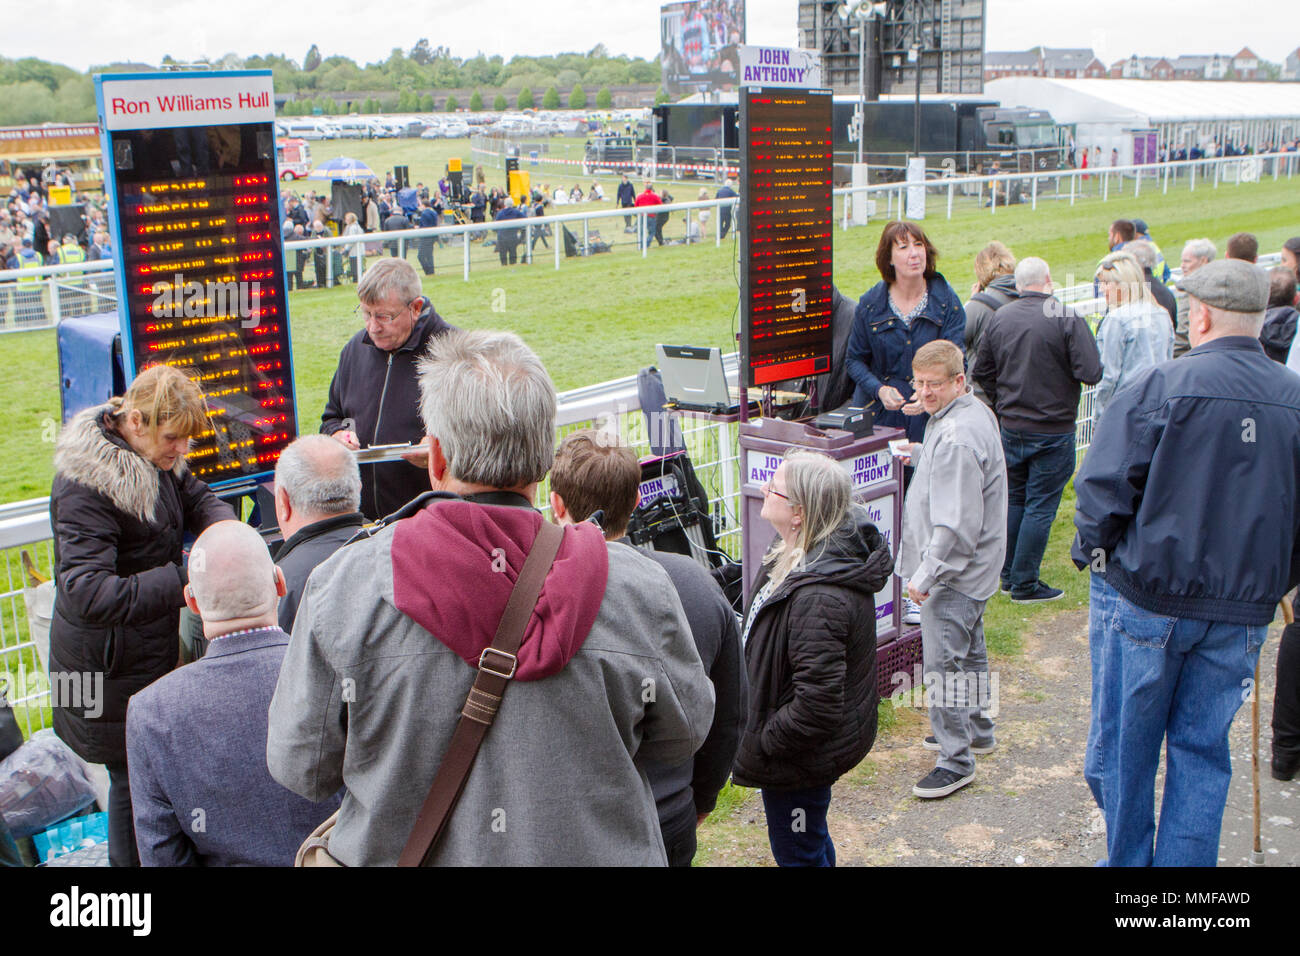 Bookmakers on their pitch at Chester races in Chester city centre, UK. - Stock Image